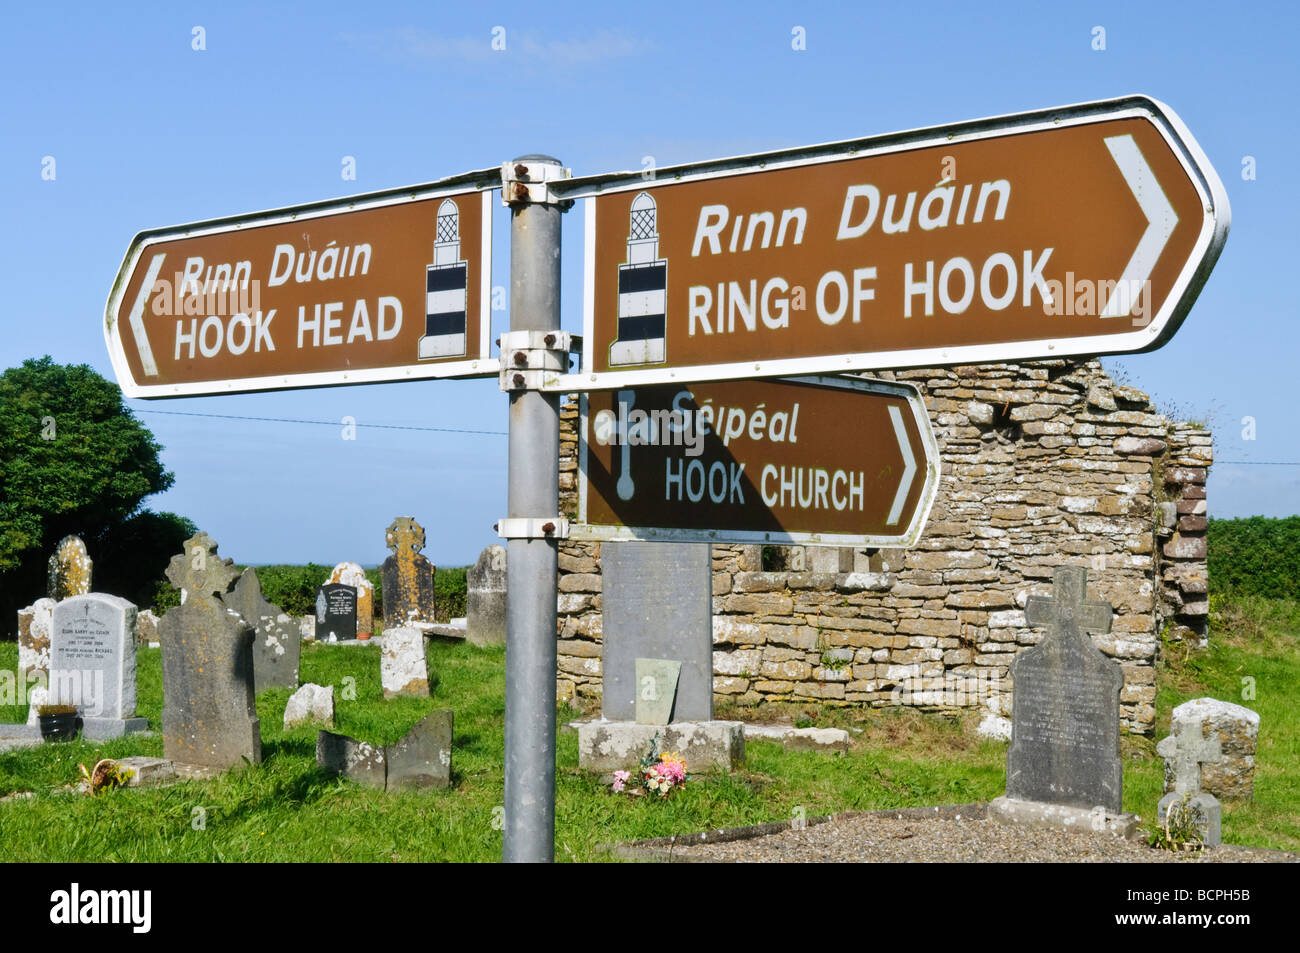 ireland gaelic road signs photos ireland gaelic road signs images alamy. Black Bedroom Furniture Sets. Home Design Ideas